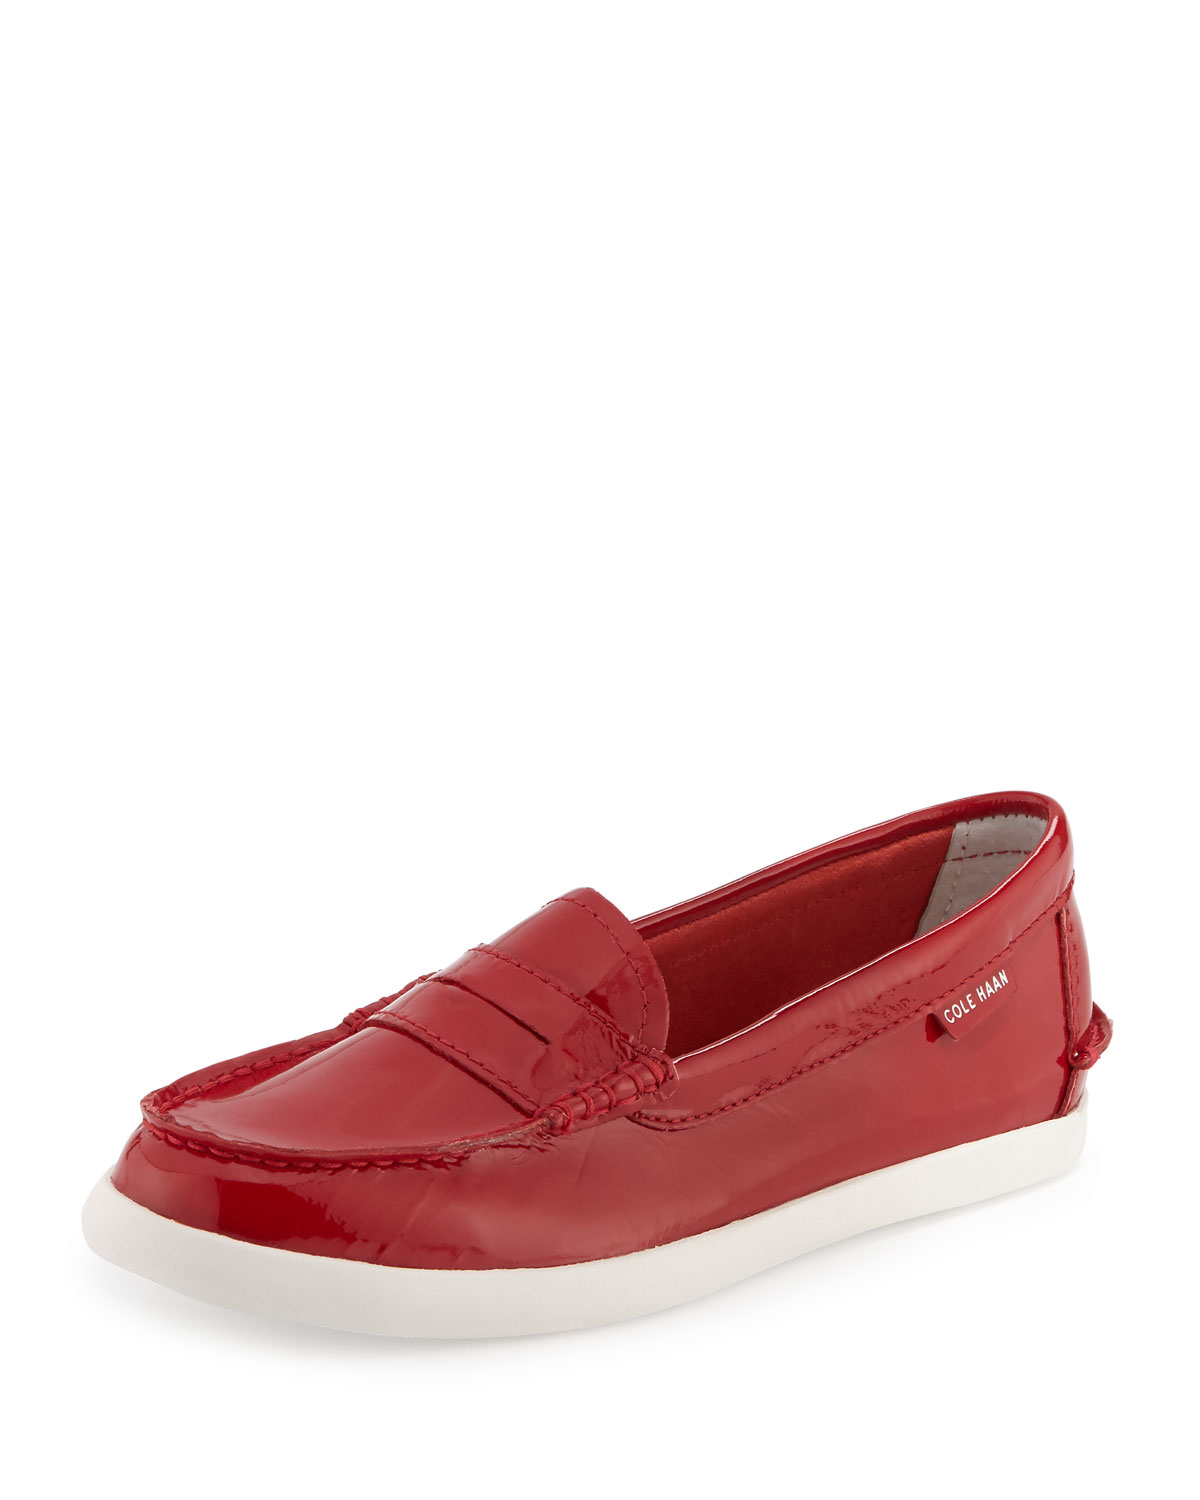 111911390b Cole Haan Pinch Weekender Patent Loafer, Red | Neiman Marcus